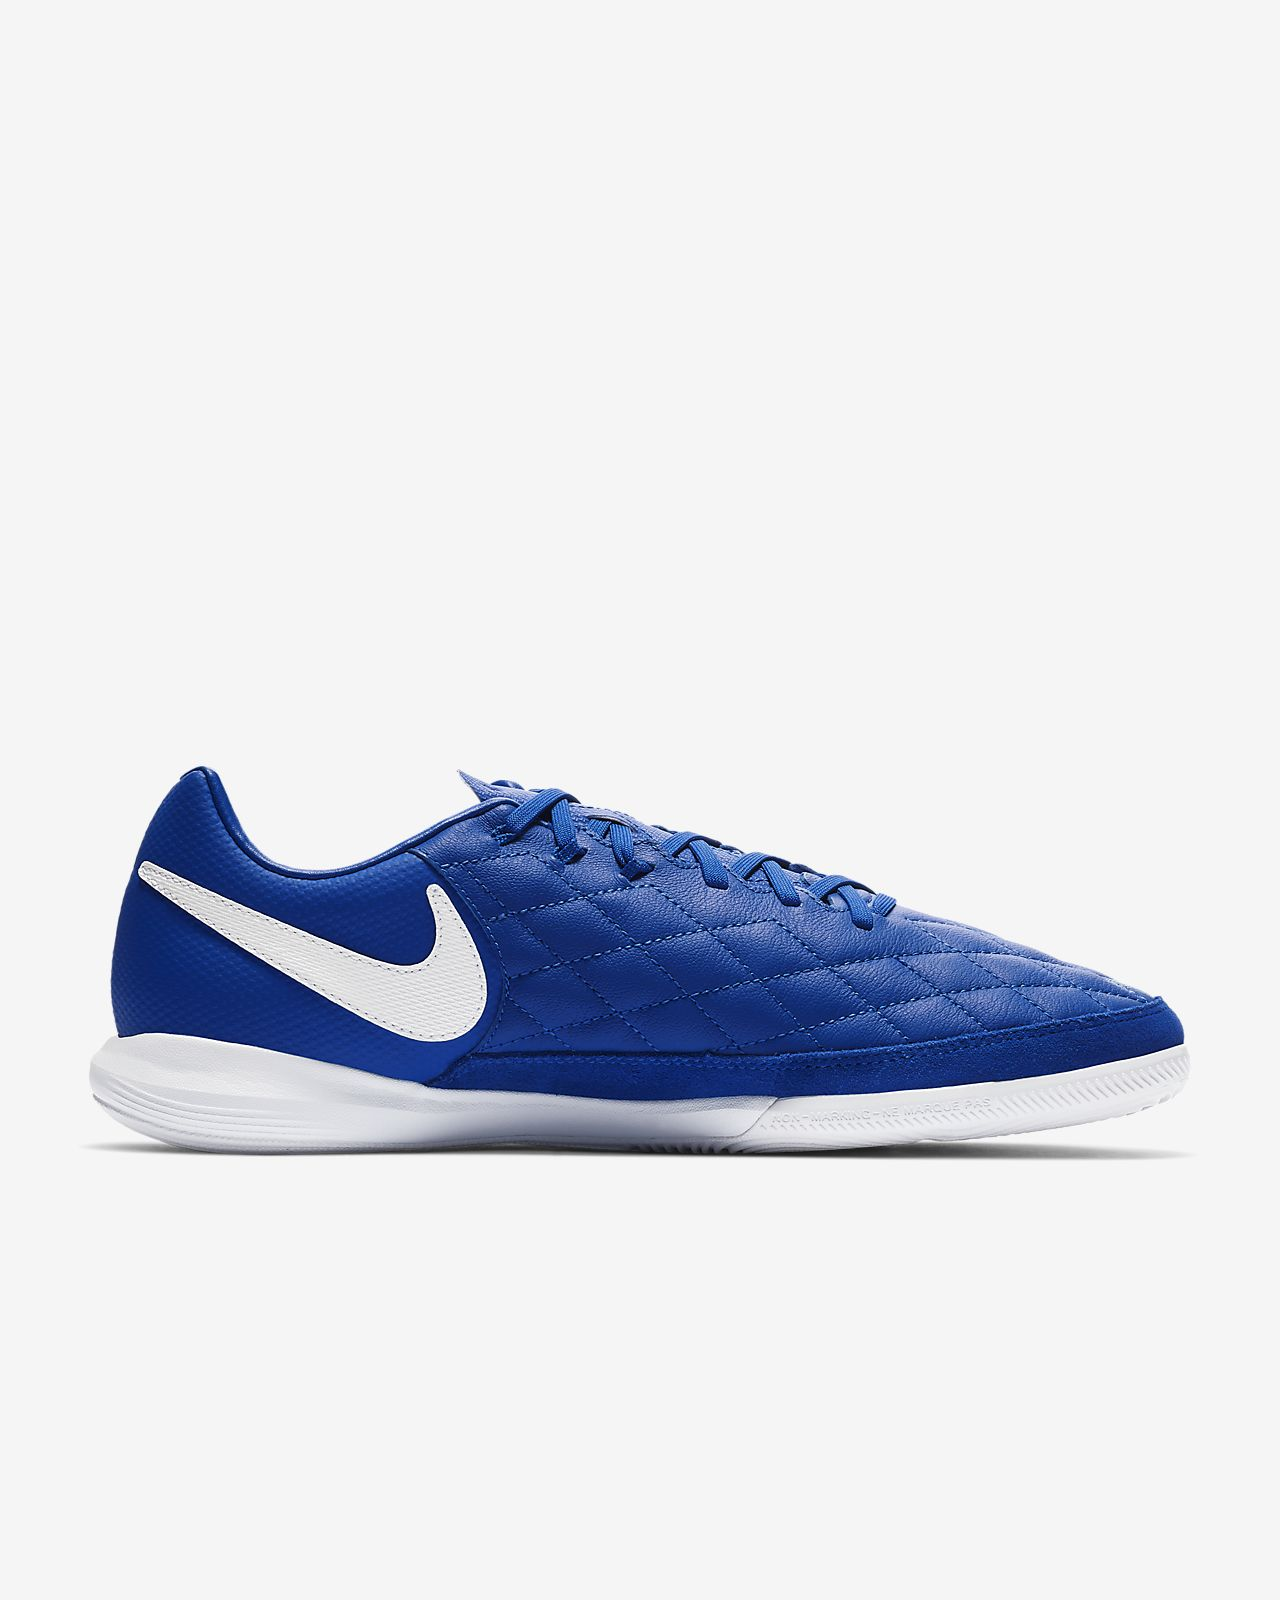 detailed look 3351d d41f7 ... Nike TiempoX Lunar Legend VII Pro 10R Indoor Court Soccer Shoe